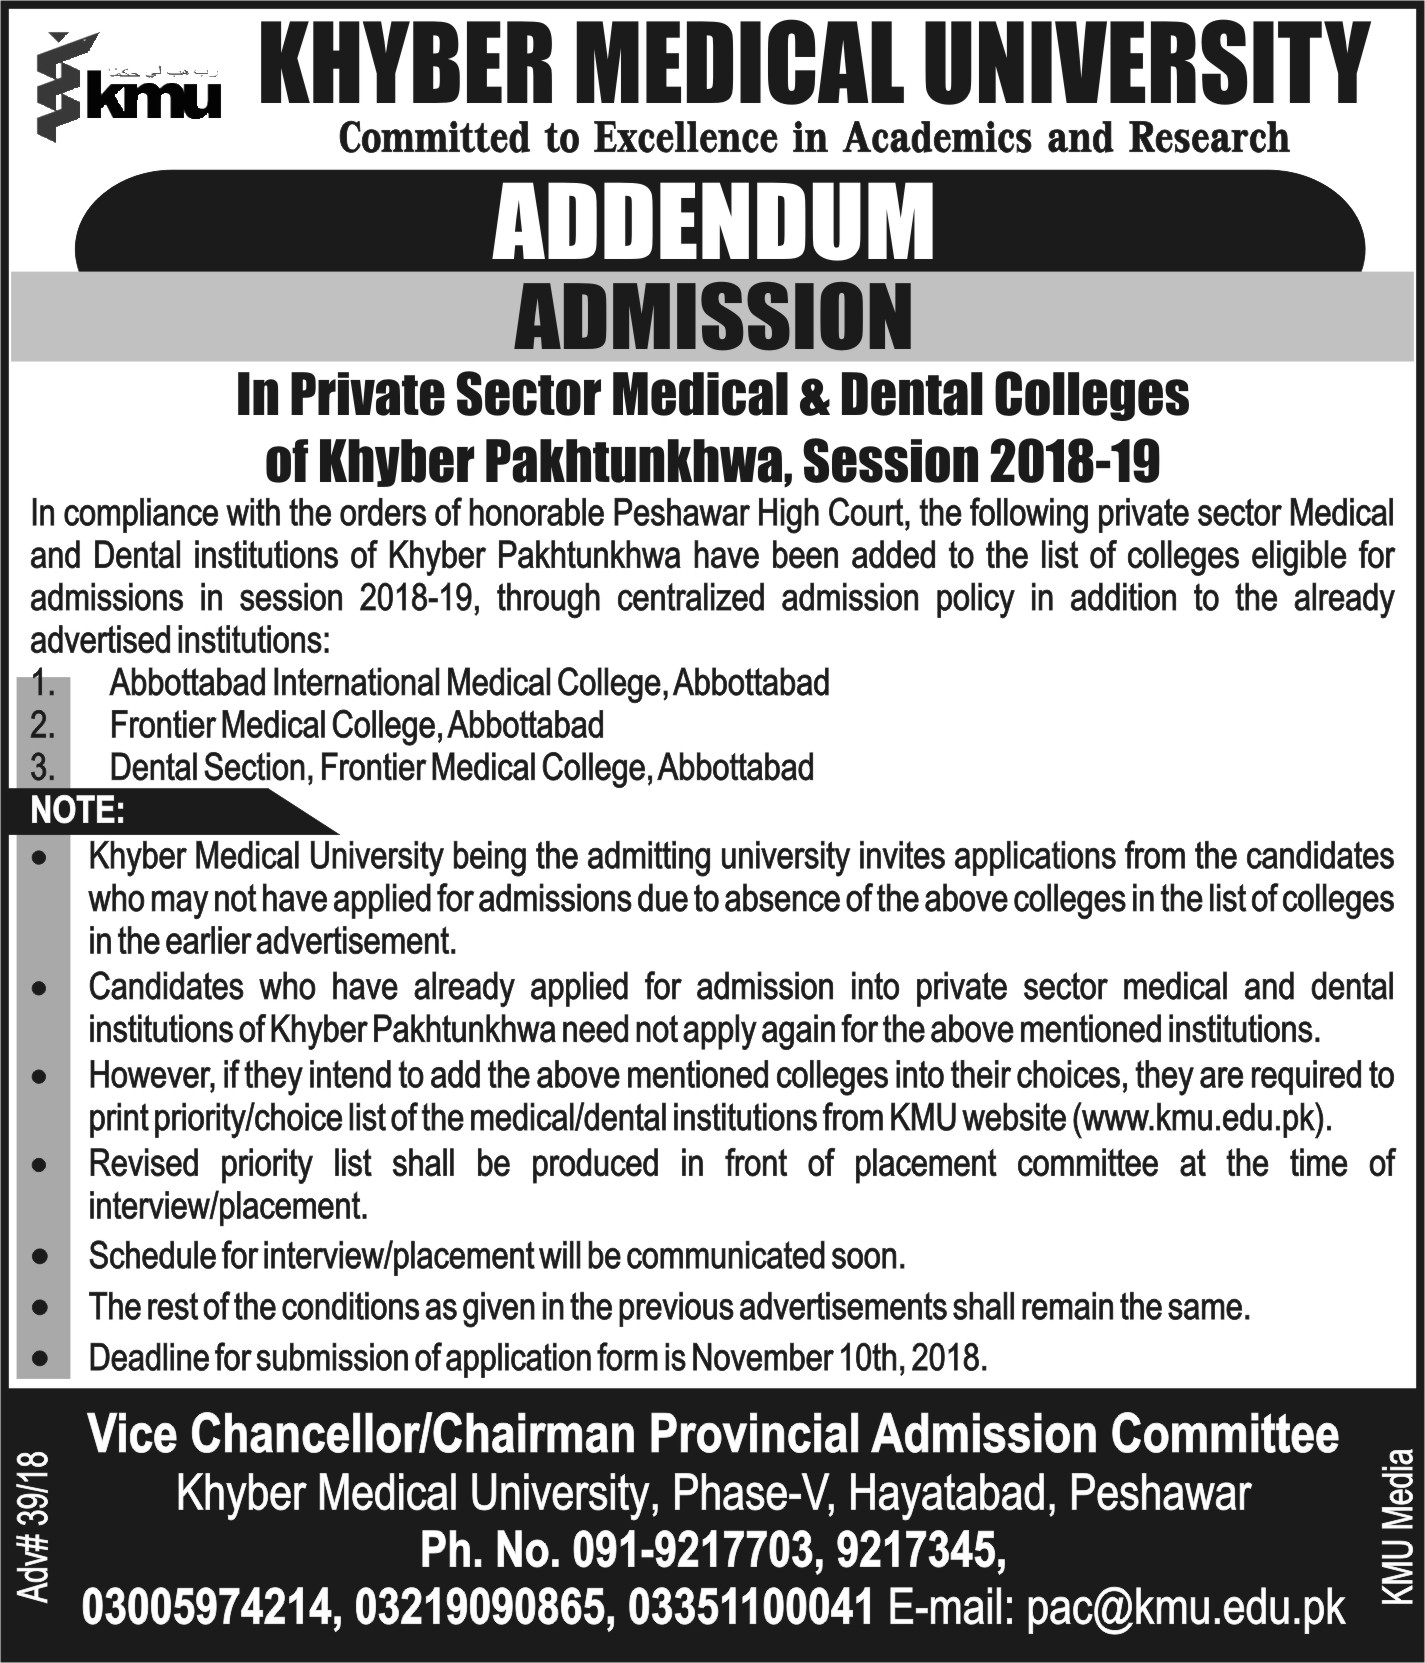 Admissions in Private Medical and Dental Colleges of KPK